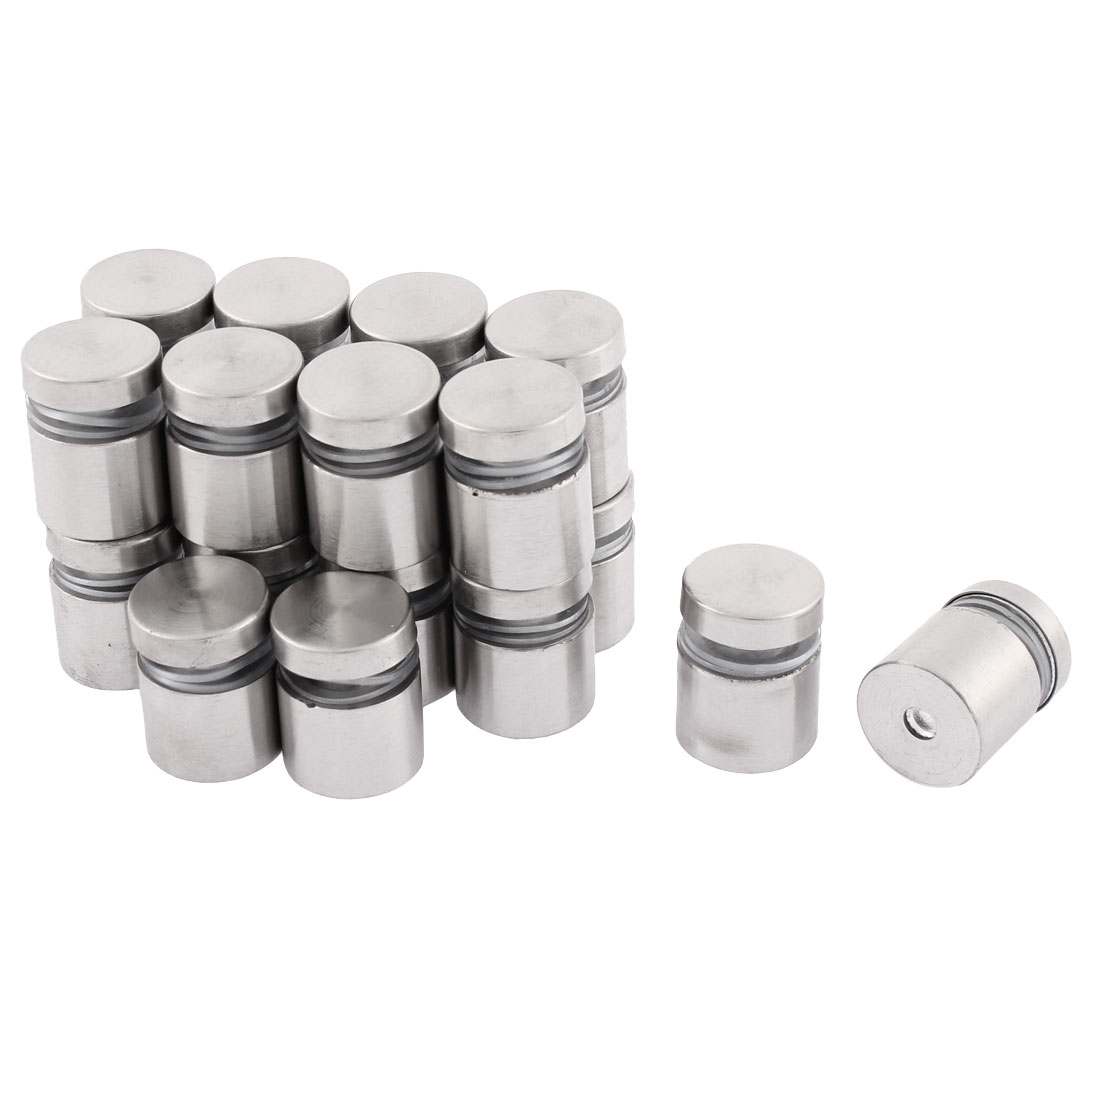 19 x 24mm Stainless Steel Wall Connector Standoff Hardware 20PCS for Glass